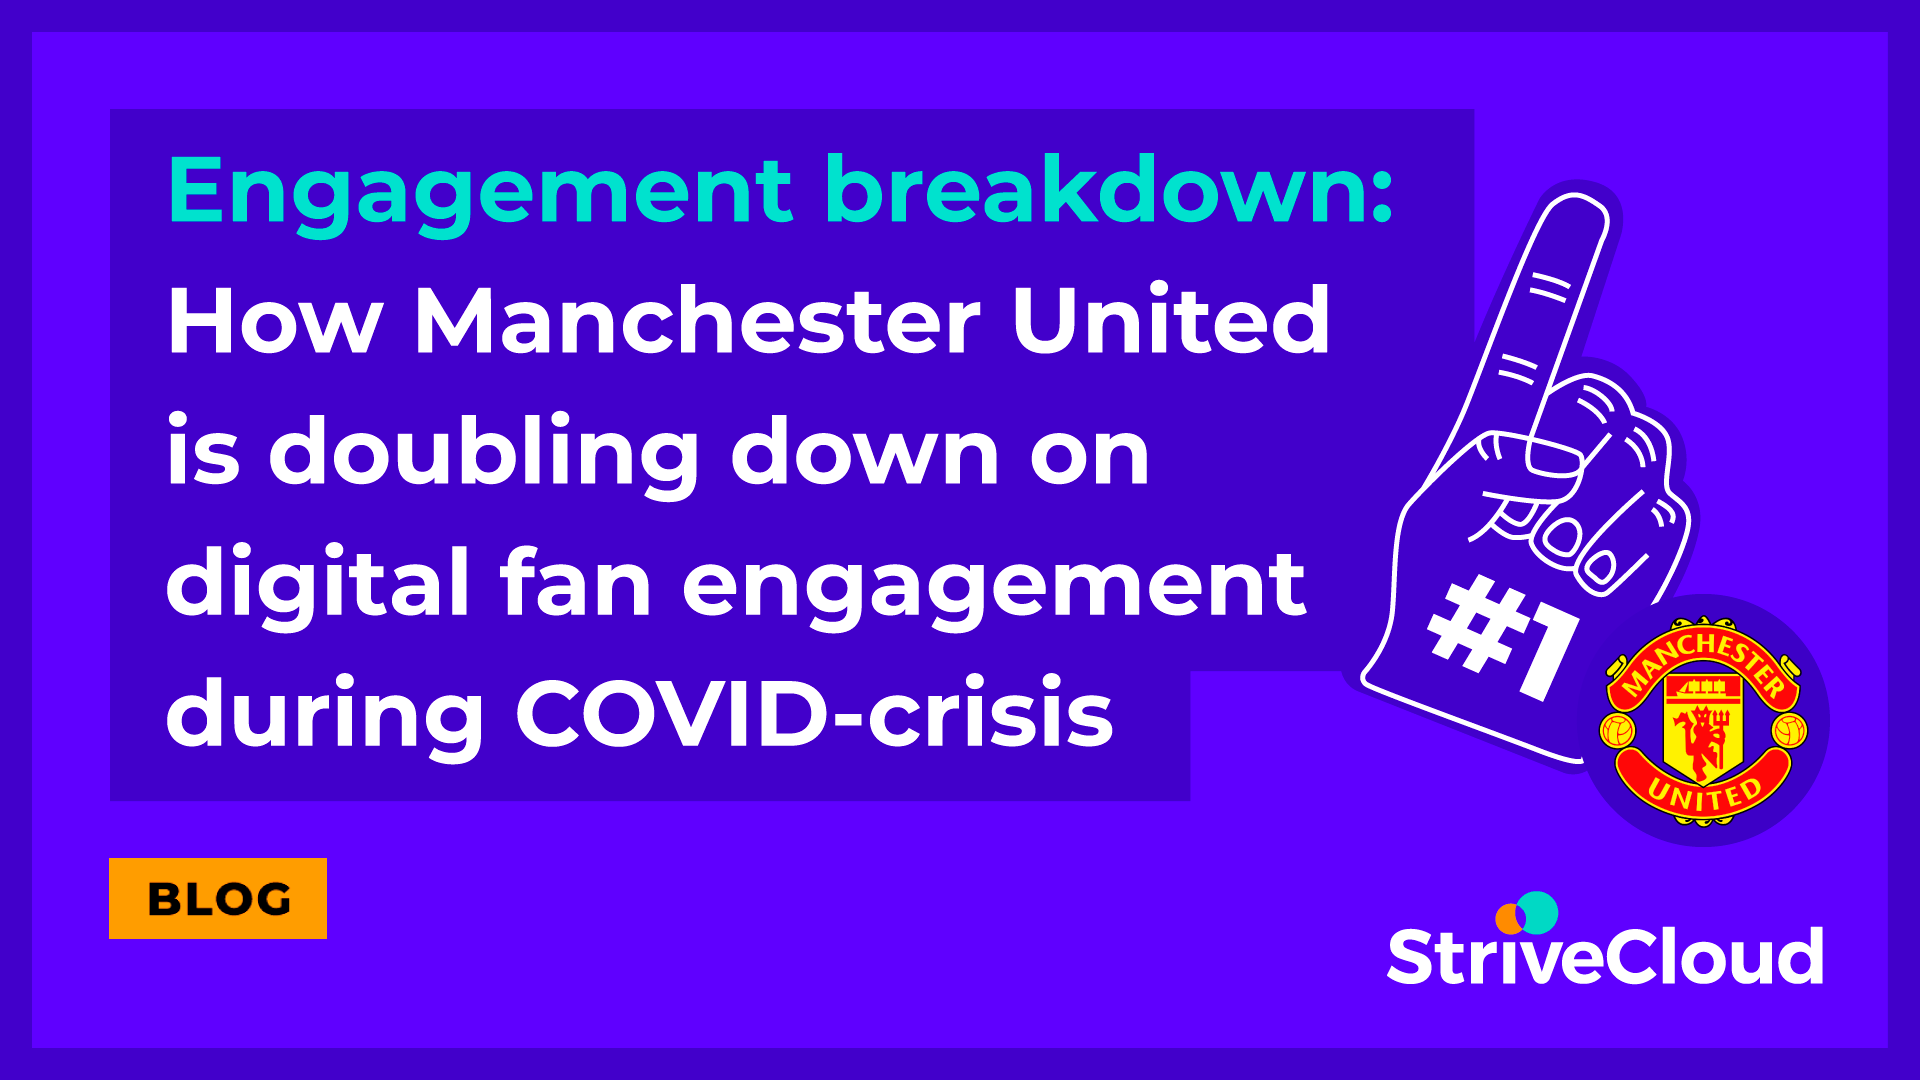 Engagement breakdown: How Manchester United is doubling down on digital fan engagement during COVID-crisis